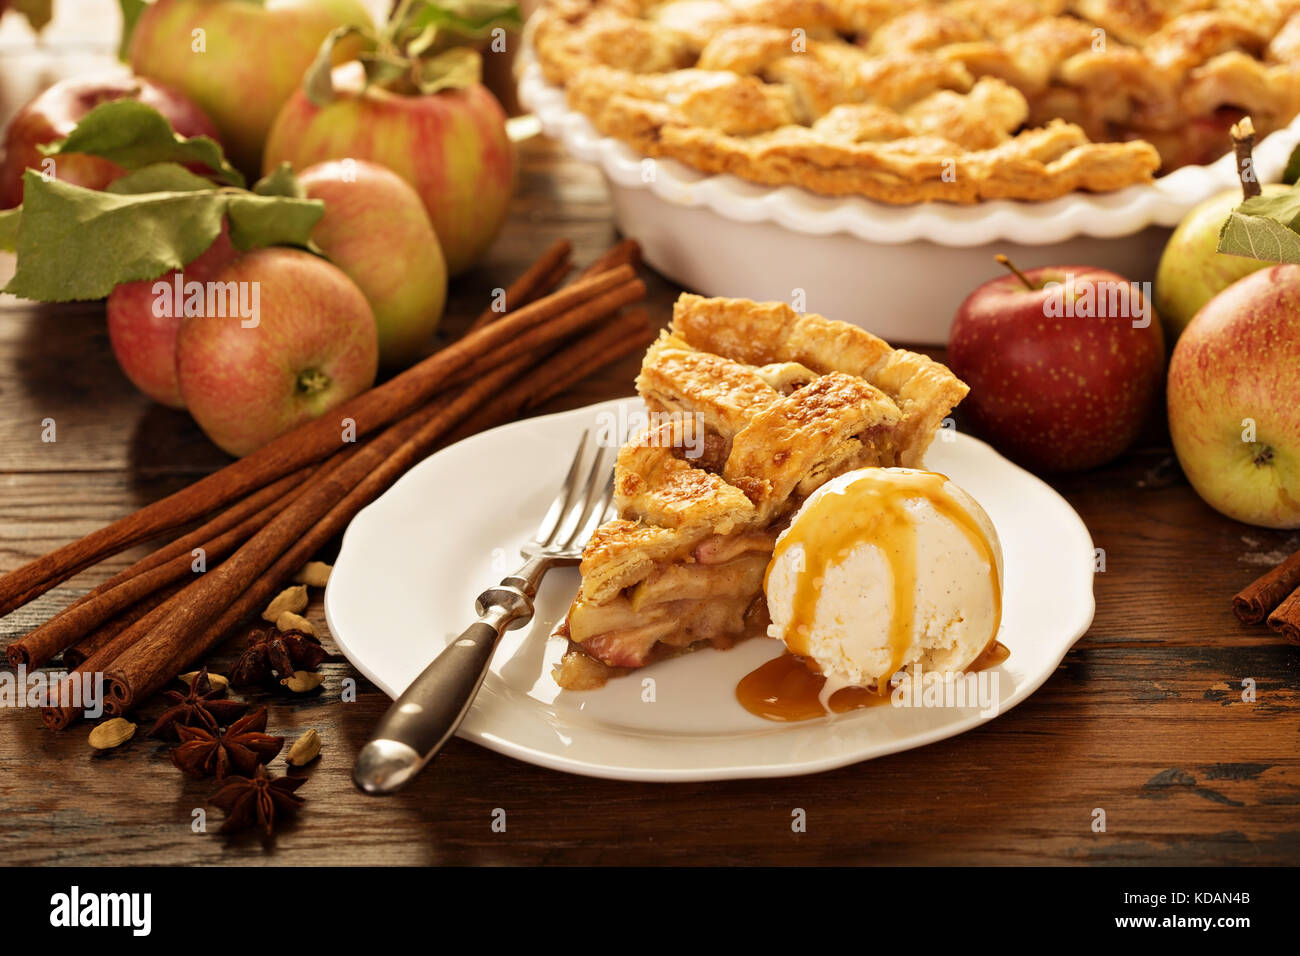 Piece of an apple pie with ice cream on a plate - Stock Image